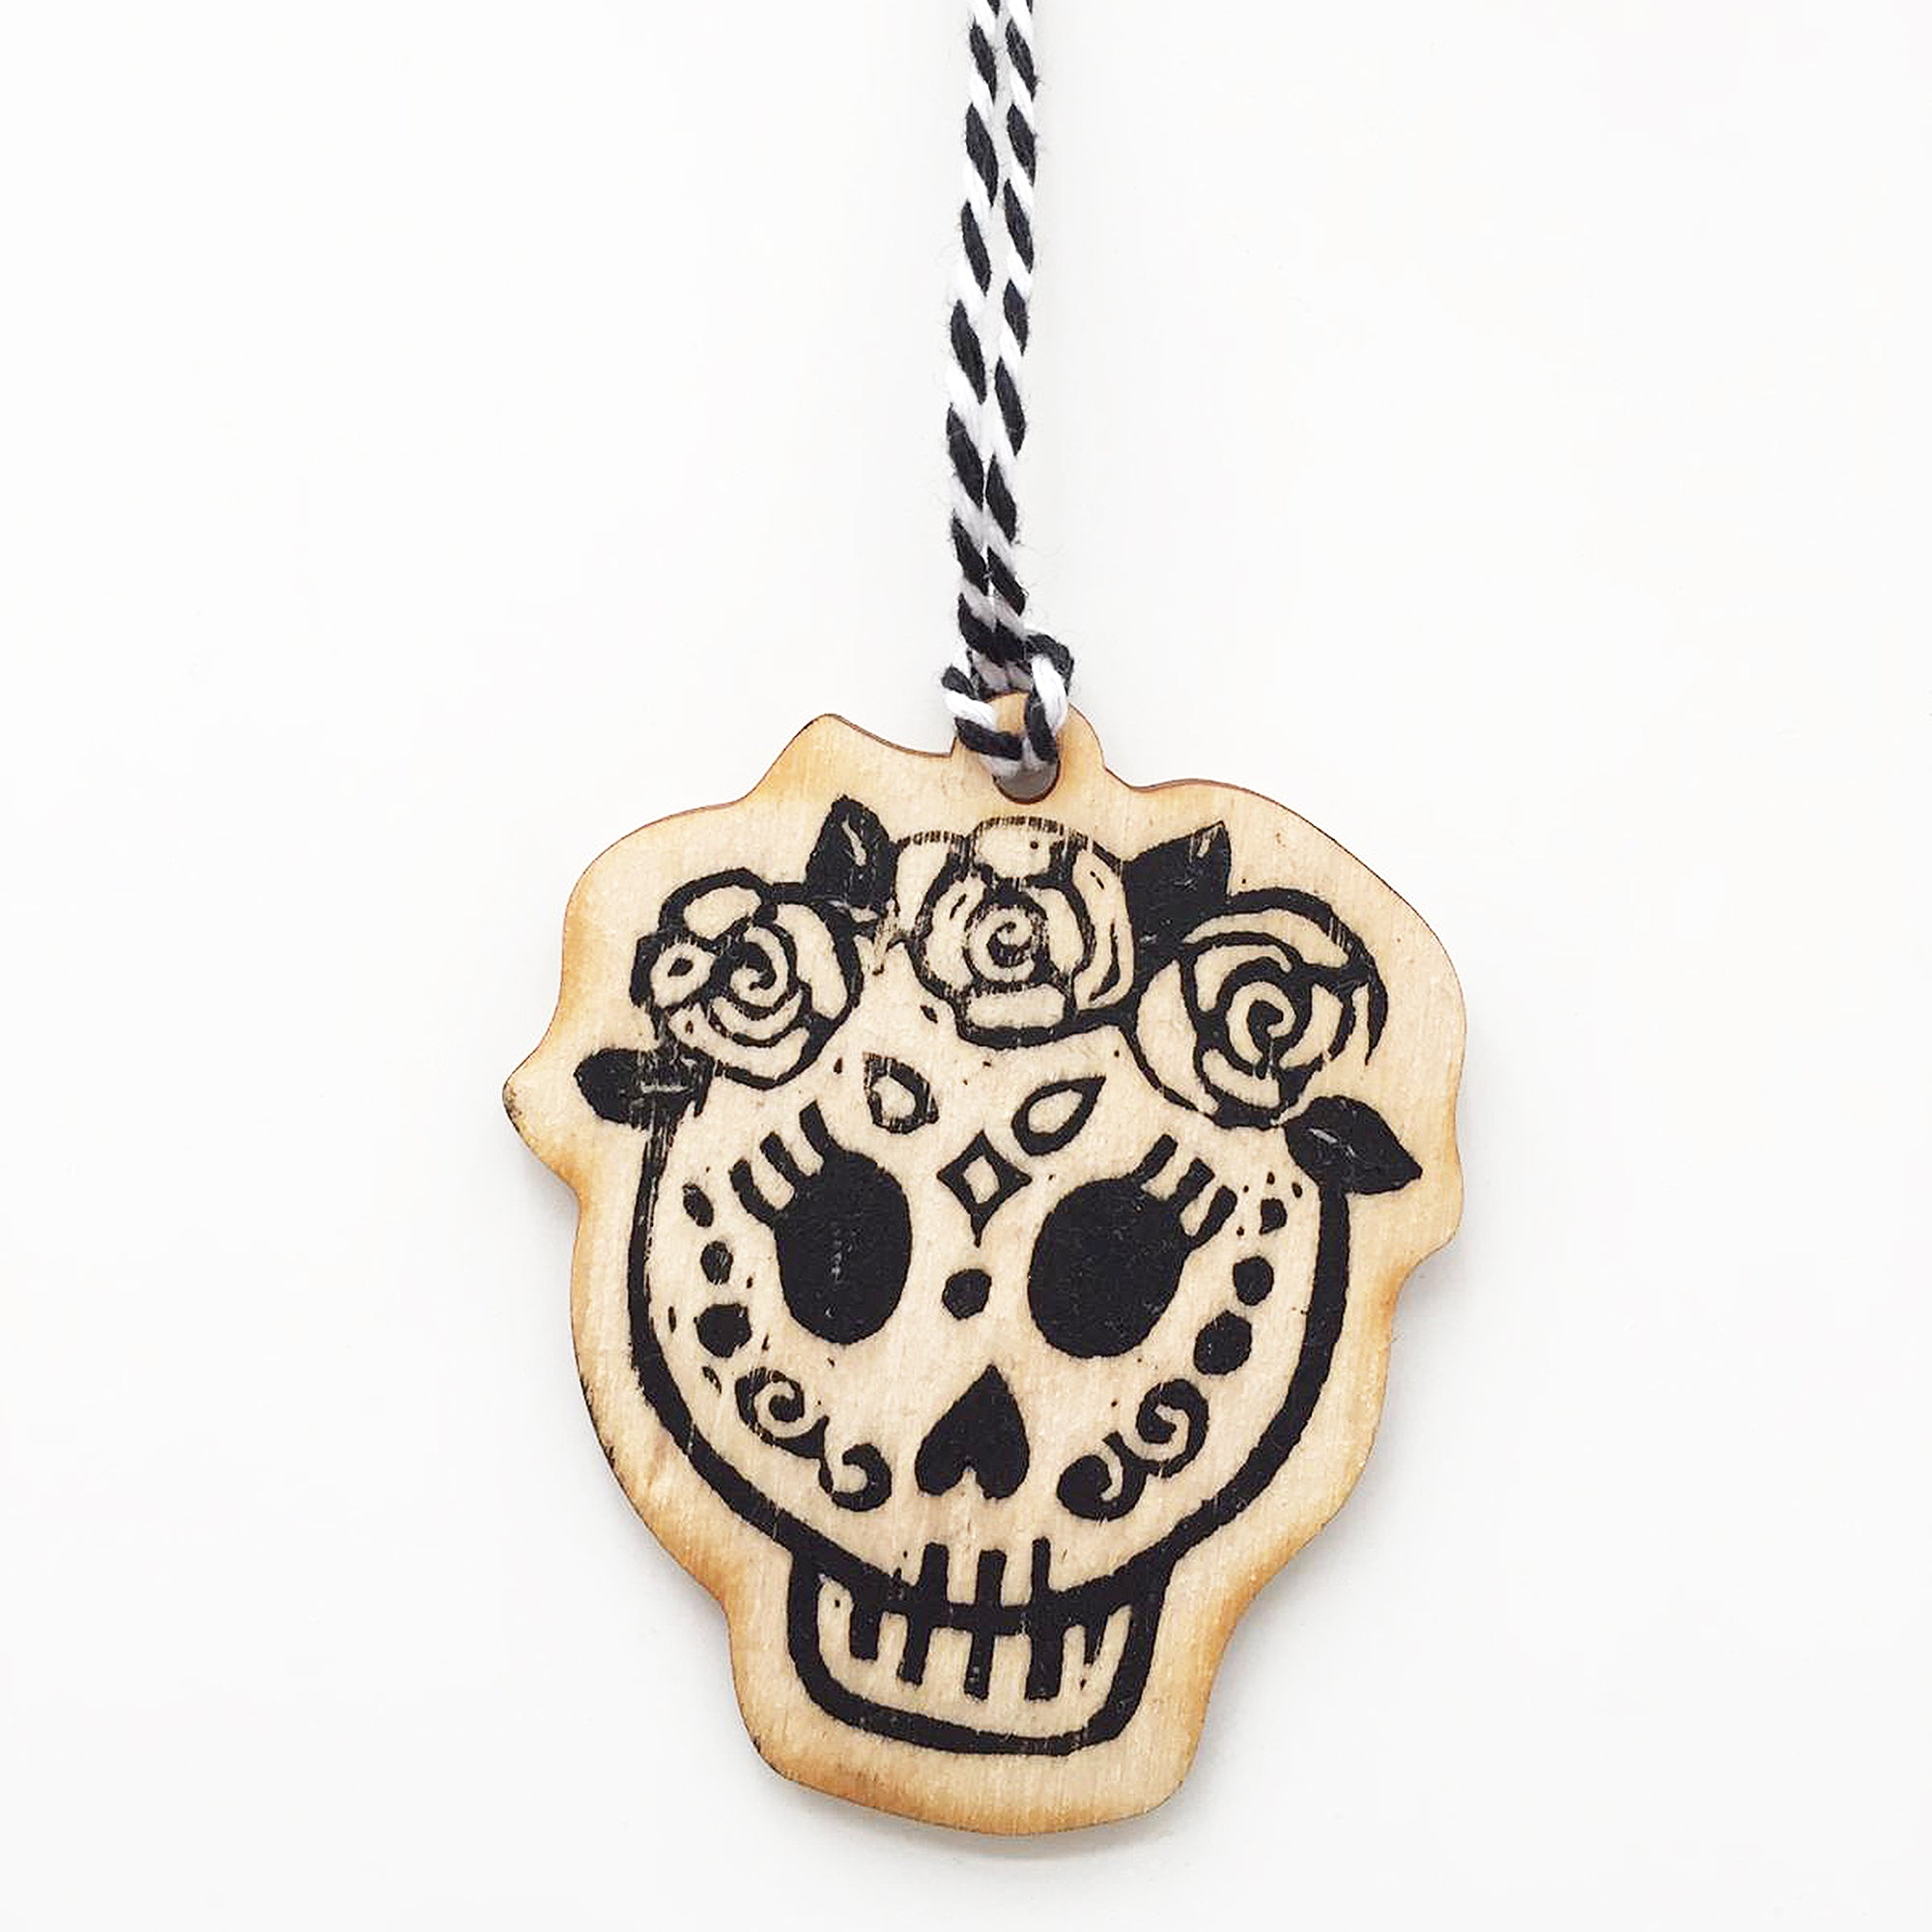 Day of the Dead Skull Christmas decoration - Female